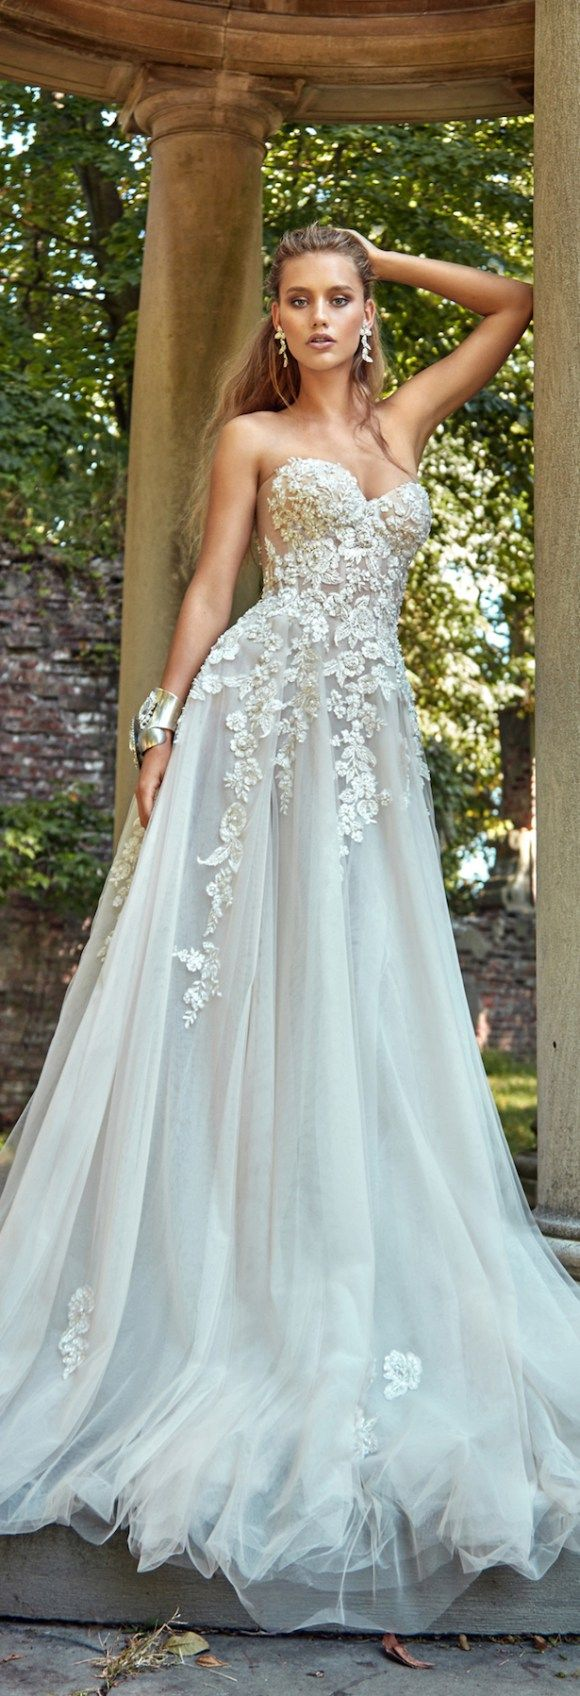 832 best Wedding dress 2 images on Pinterest | Sweet dress, Classy ...